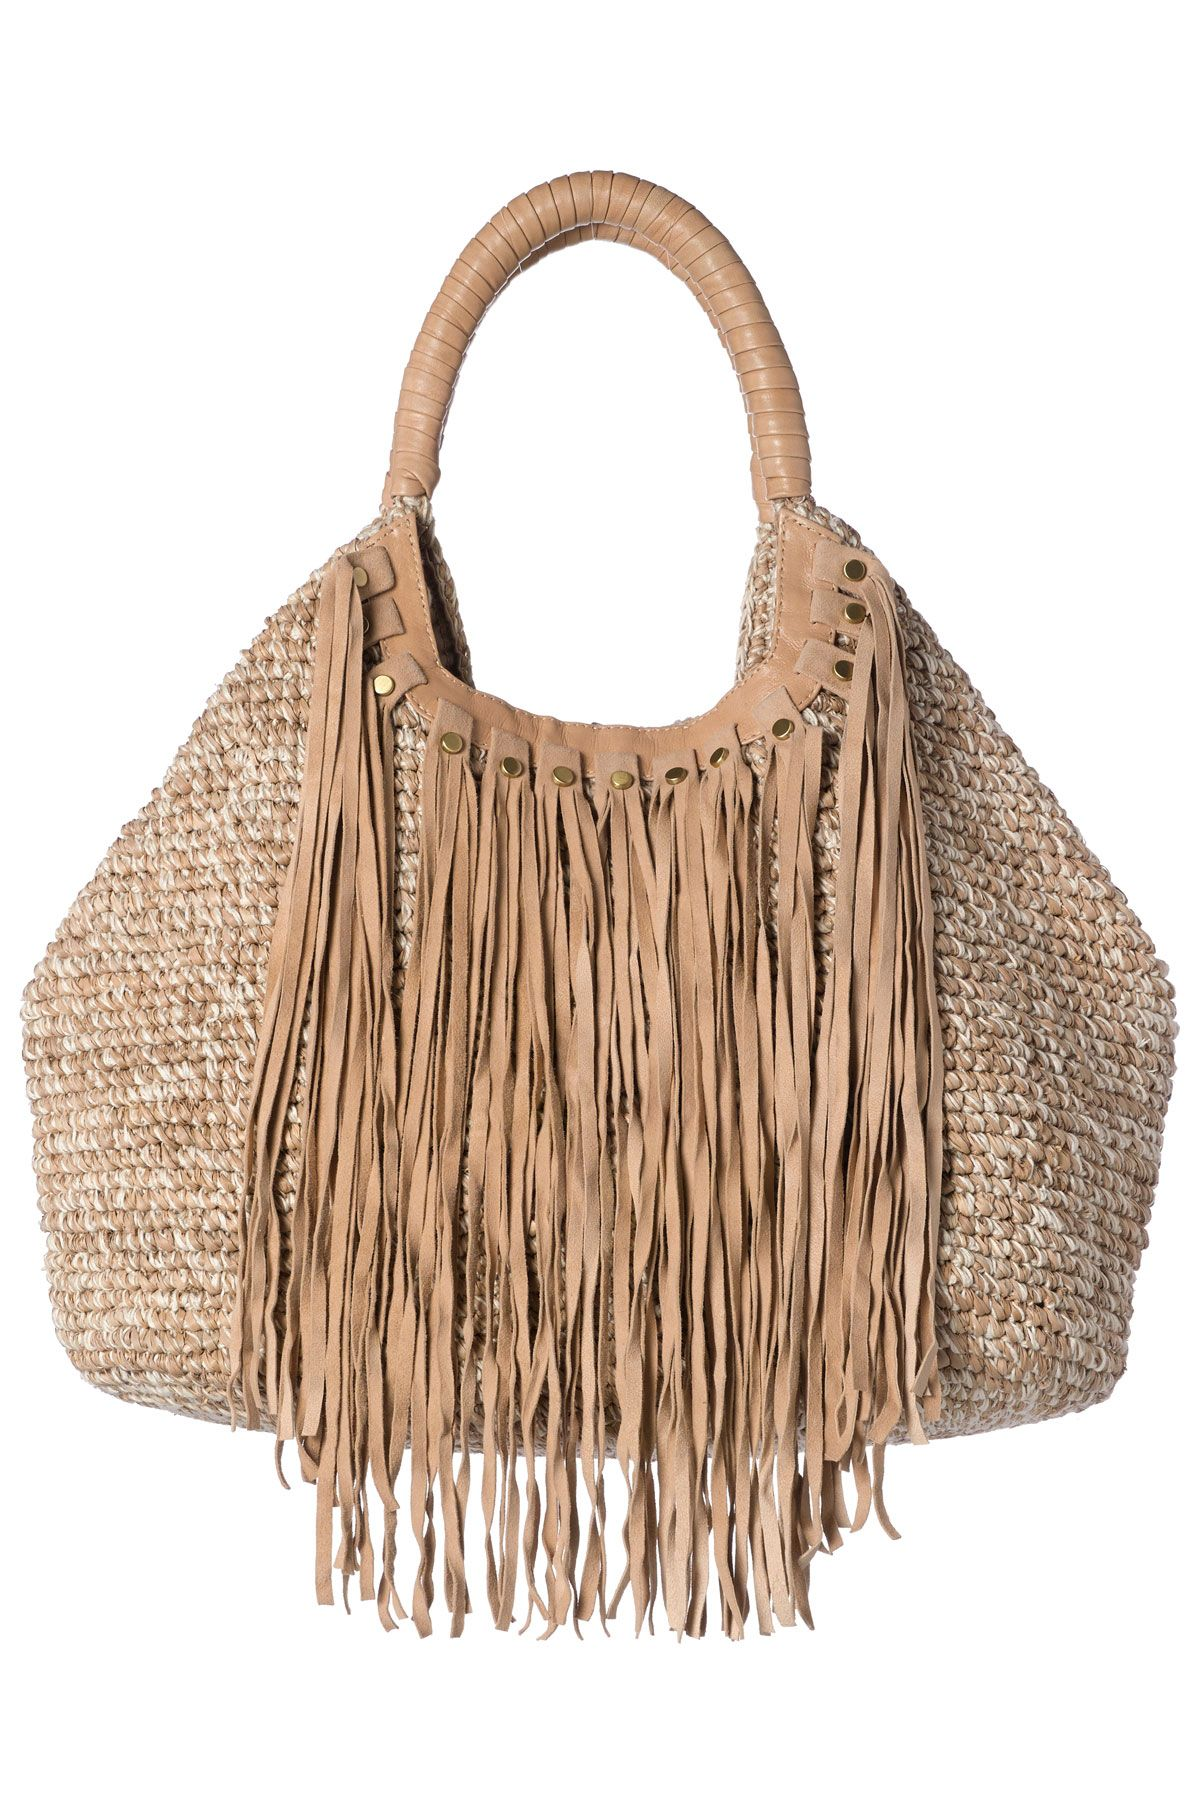 a6121e7e708 Straw bag with leather fringe detail.